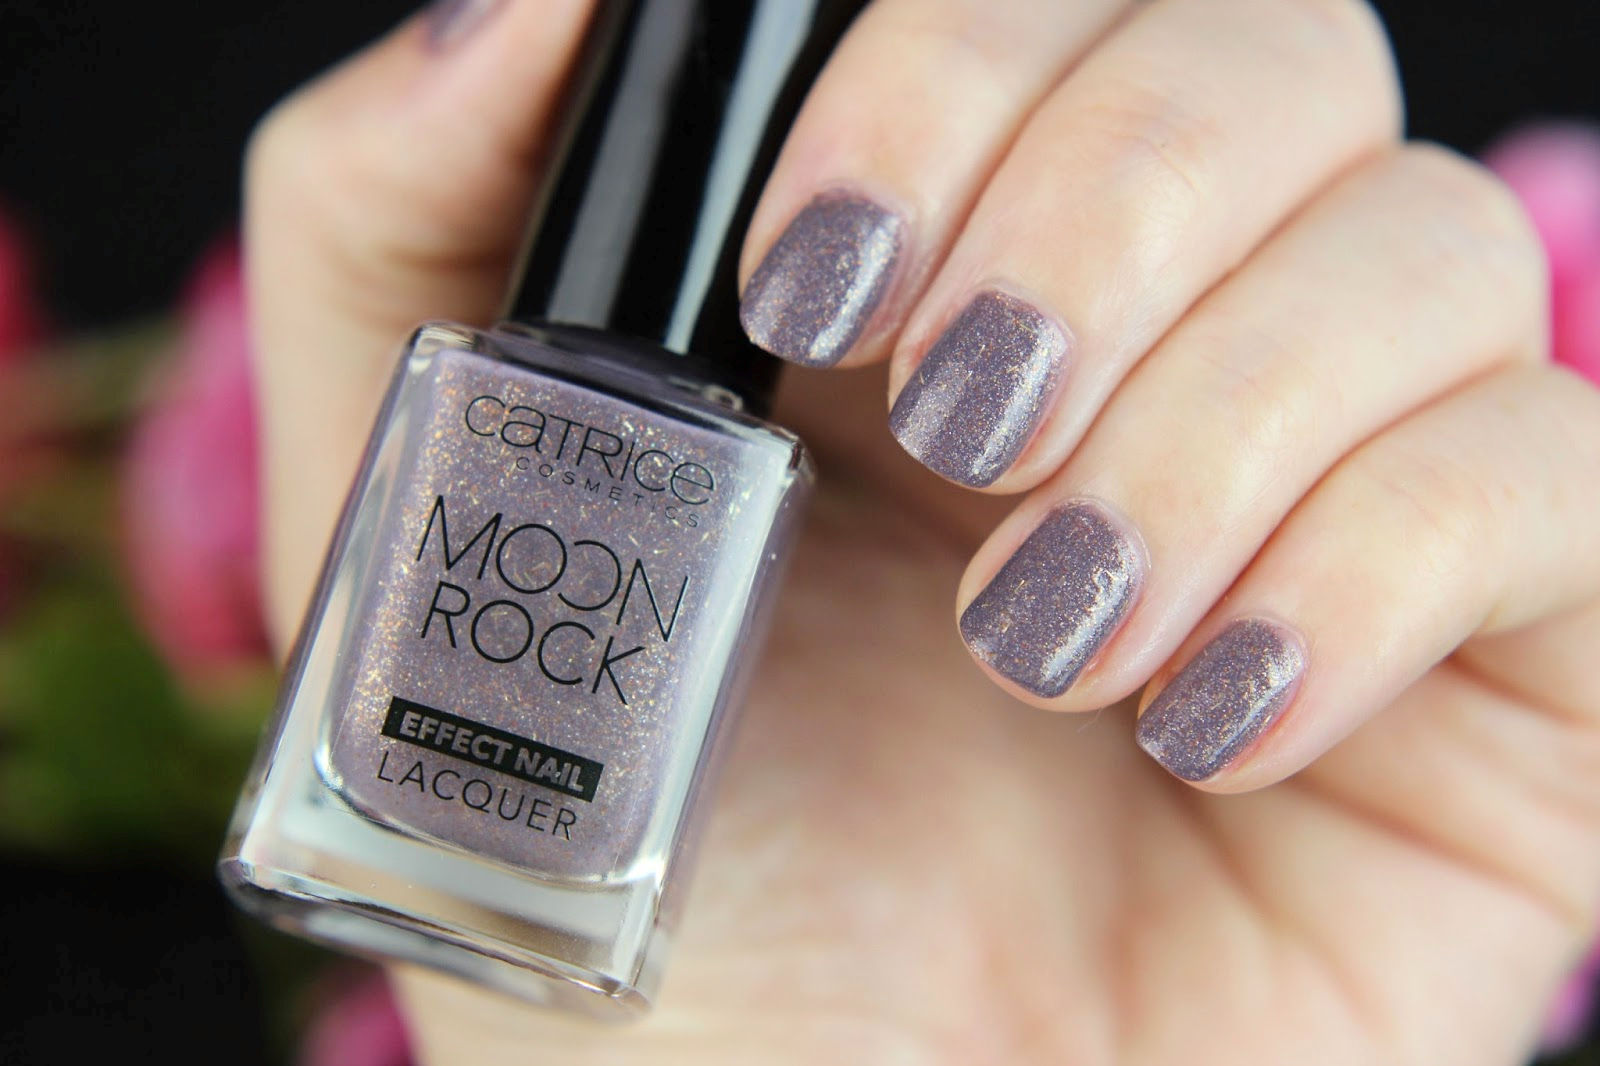 2016, CATRICE, drogerie, effect nail lacquer, glitzer, herbst, magical bluelight, moon rock, Moon Rock Effect Nail Lacquer, moonlight berriage, nagellack, nailpolish, neues sortiment, review, swatches, tragebilder,